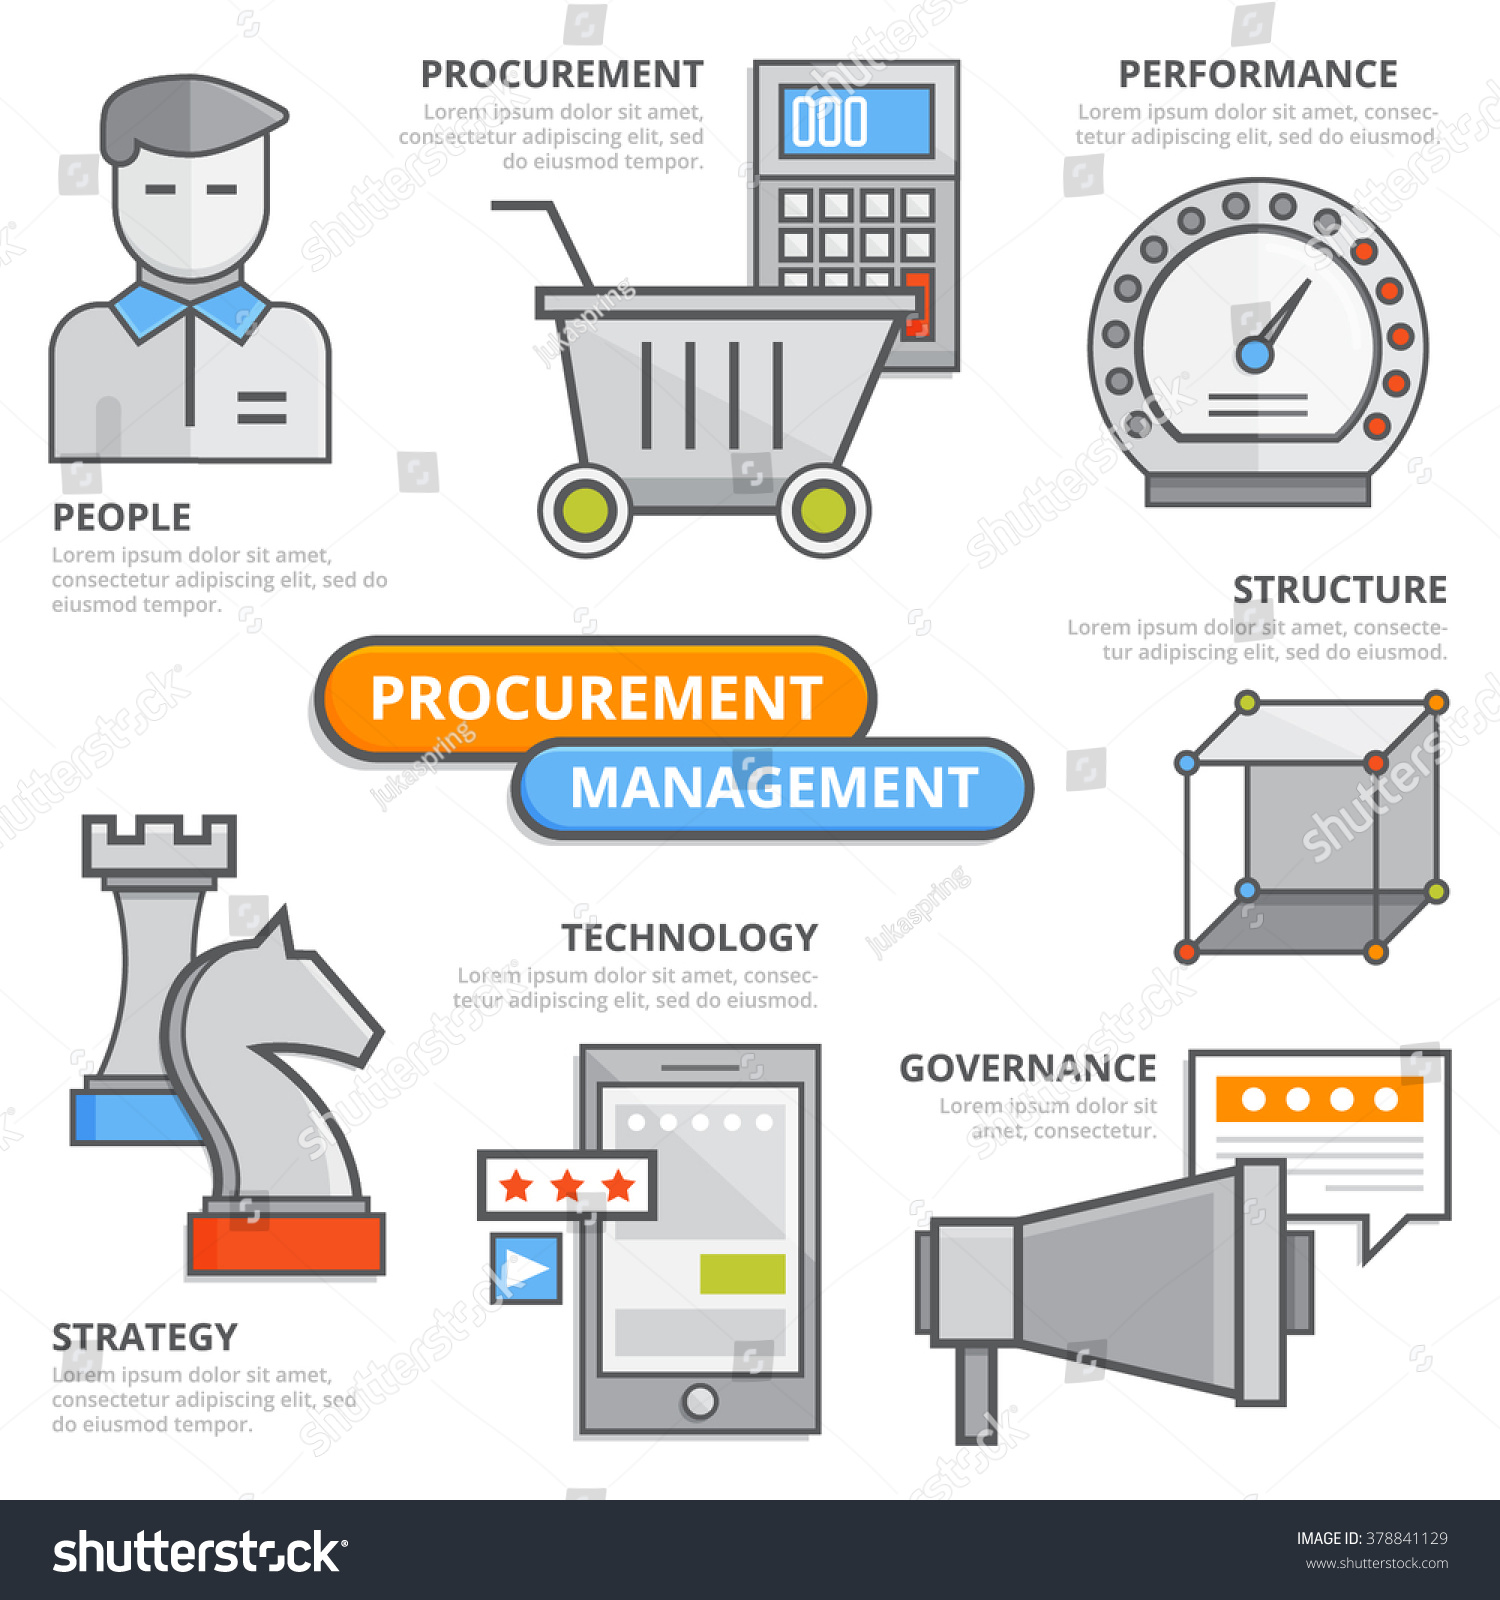 Procurement Management Design Concept People Performance Stock